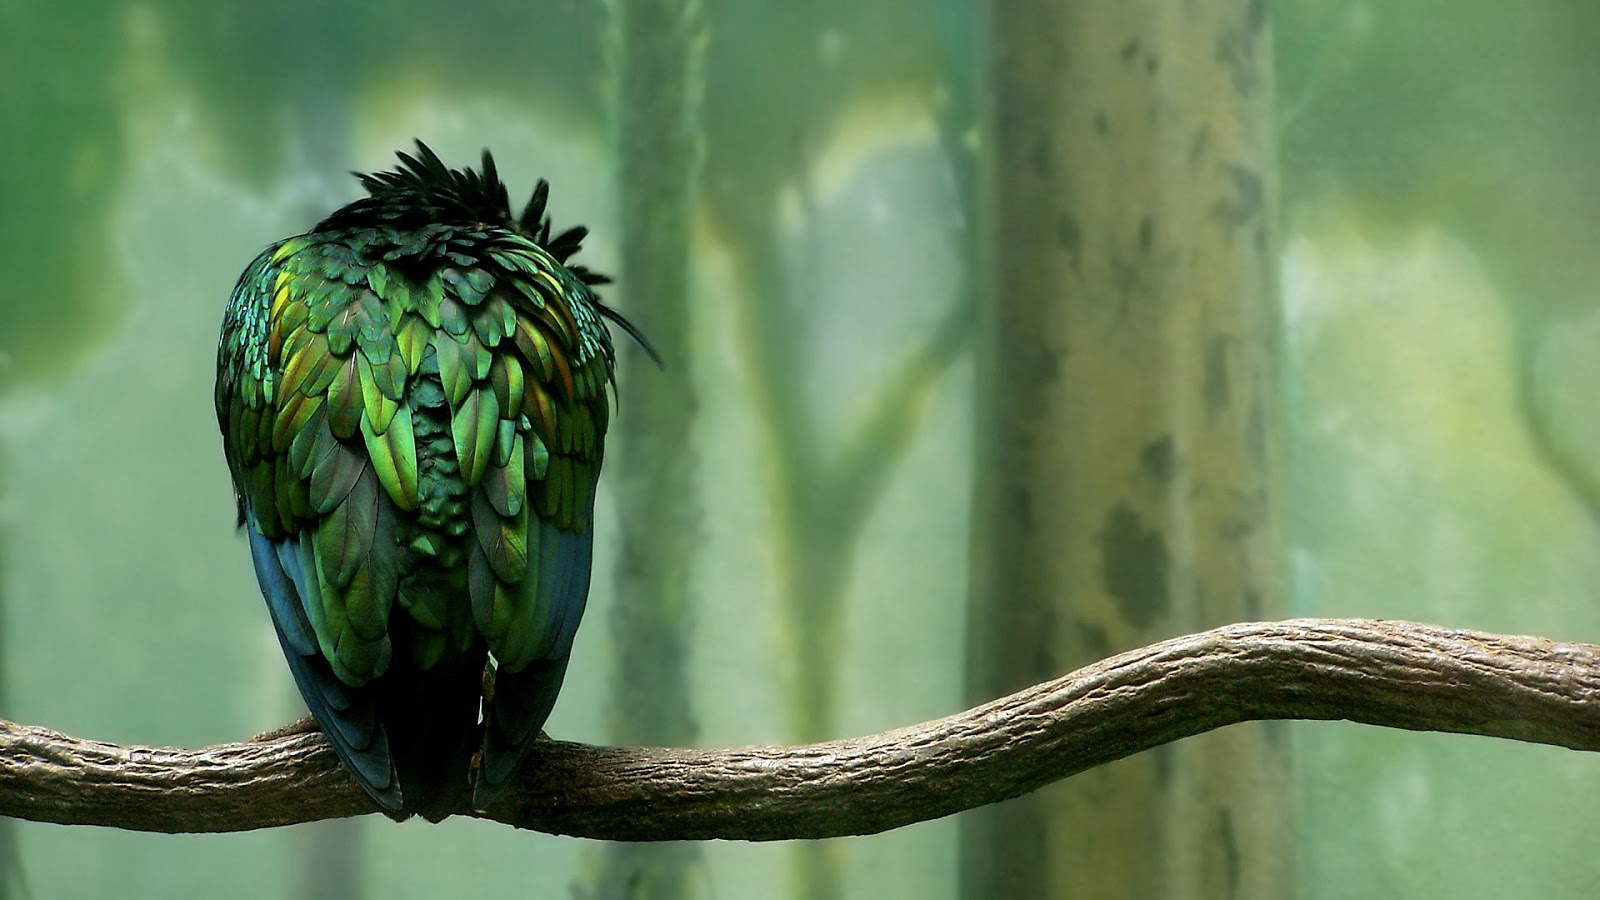 http://3.bp.blogspot.com/-909SejifXpU/UN_4v_UL0DI/AAAAAAAAKsI/unh7Lnn9pPY/s1600/green_colored_bird-HD.jpg